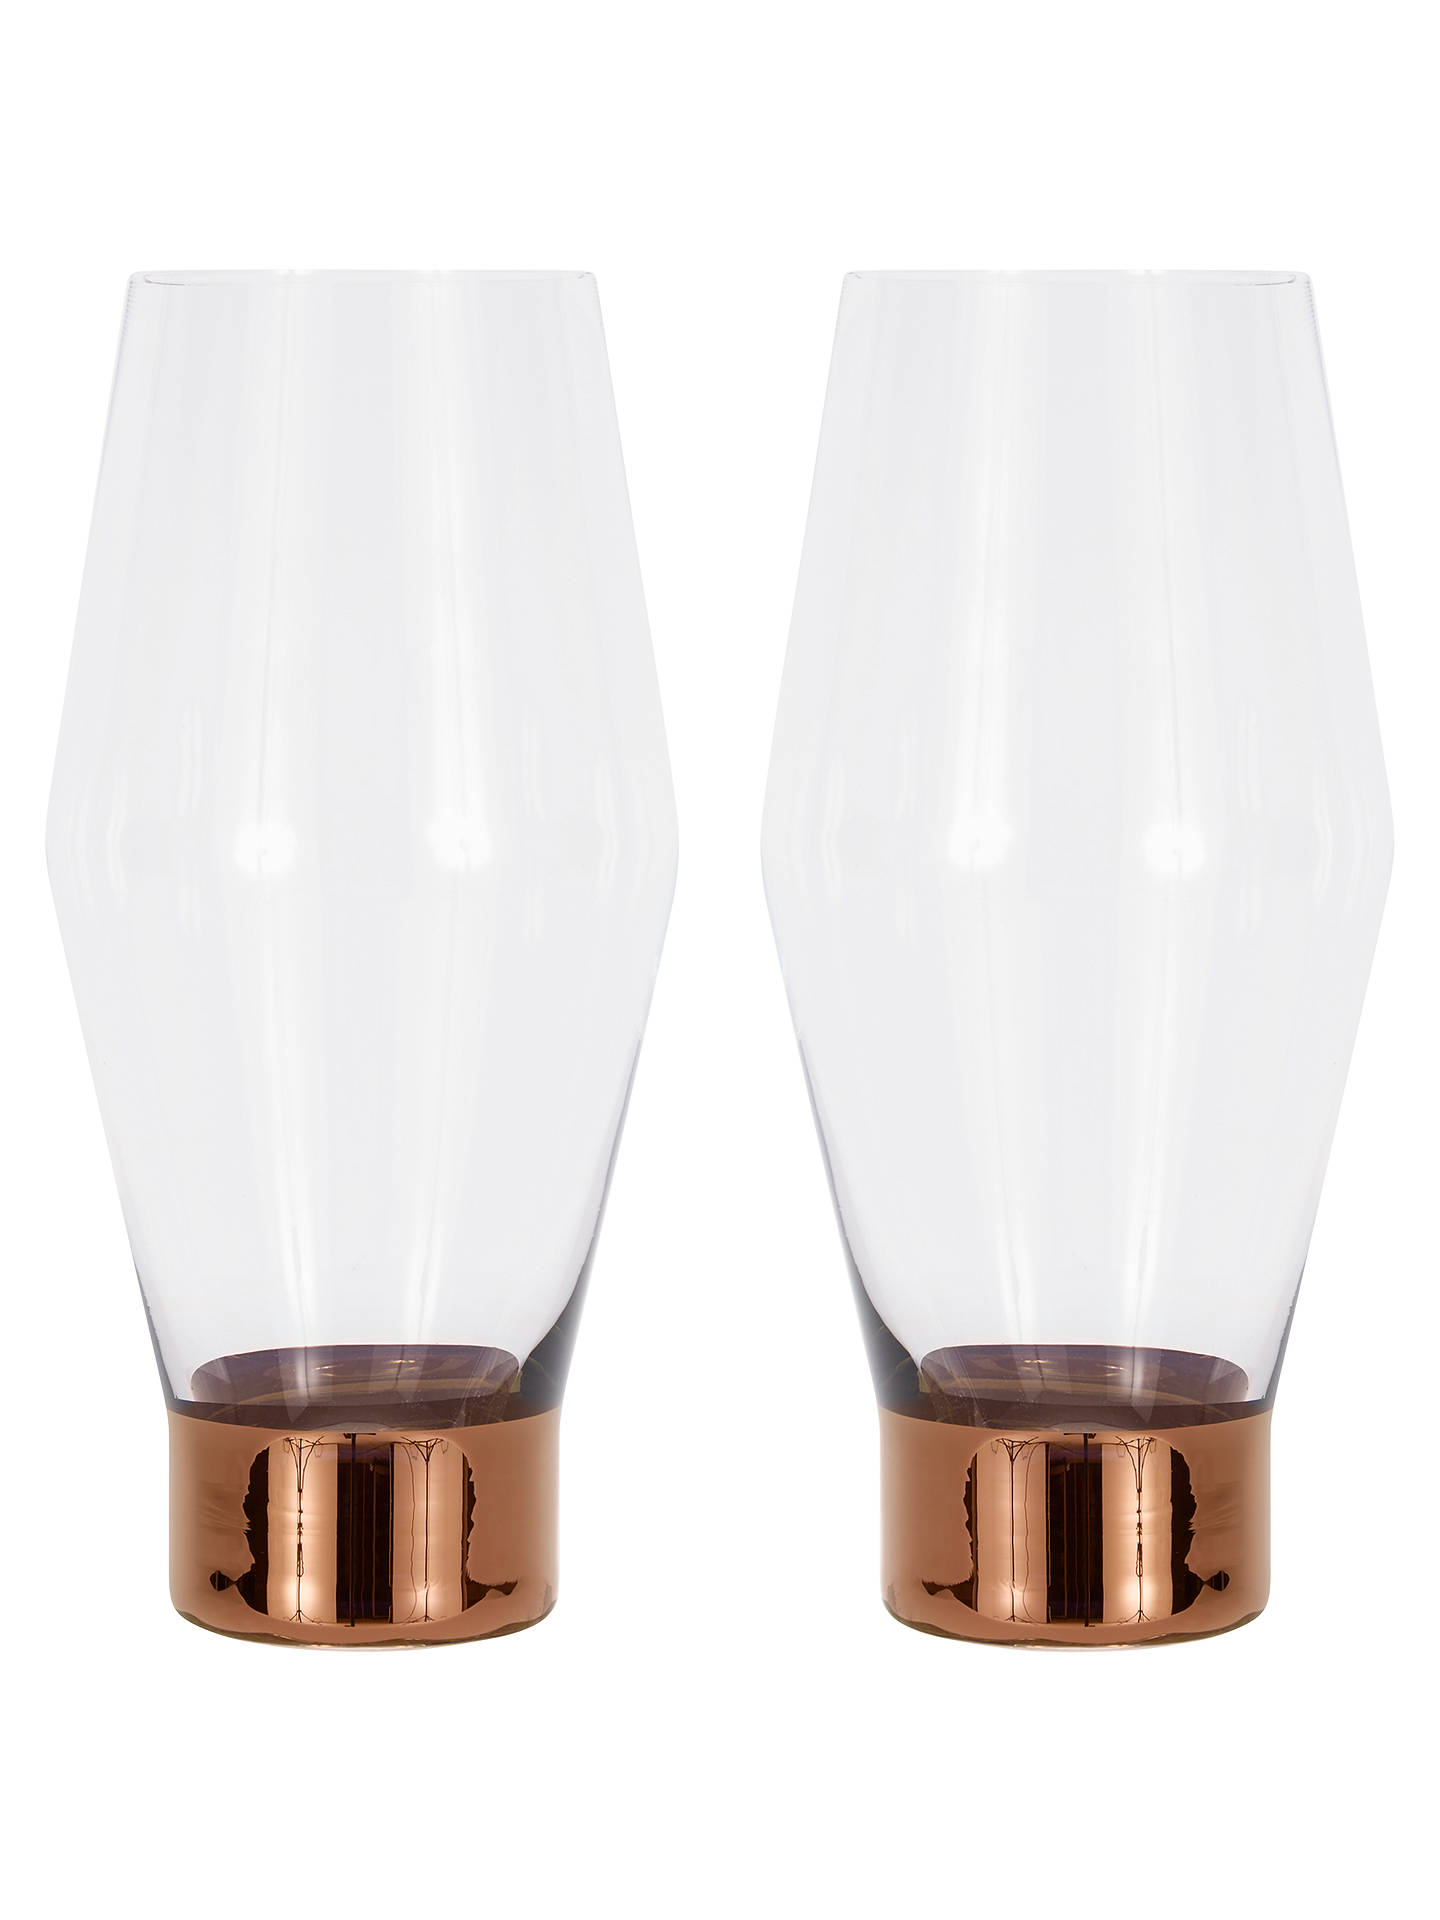 BuyTom Dixon Tank Beer Glasses, Pack of 2 Online at johnlewis.com